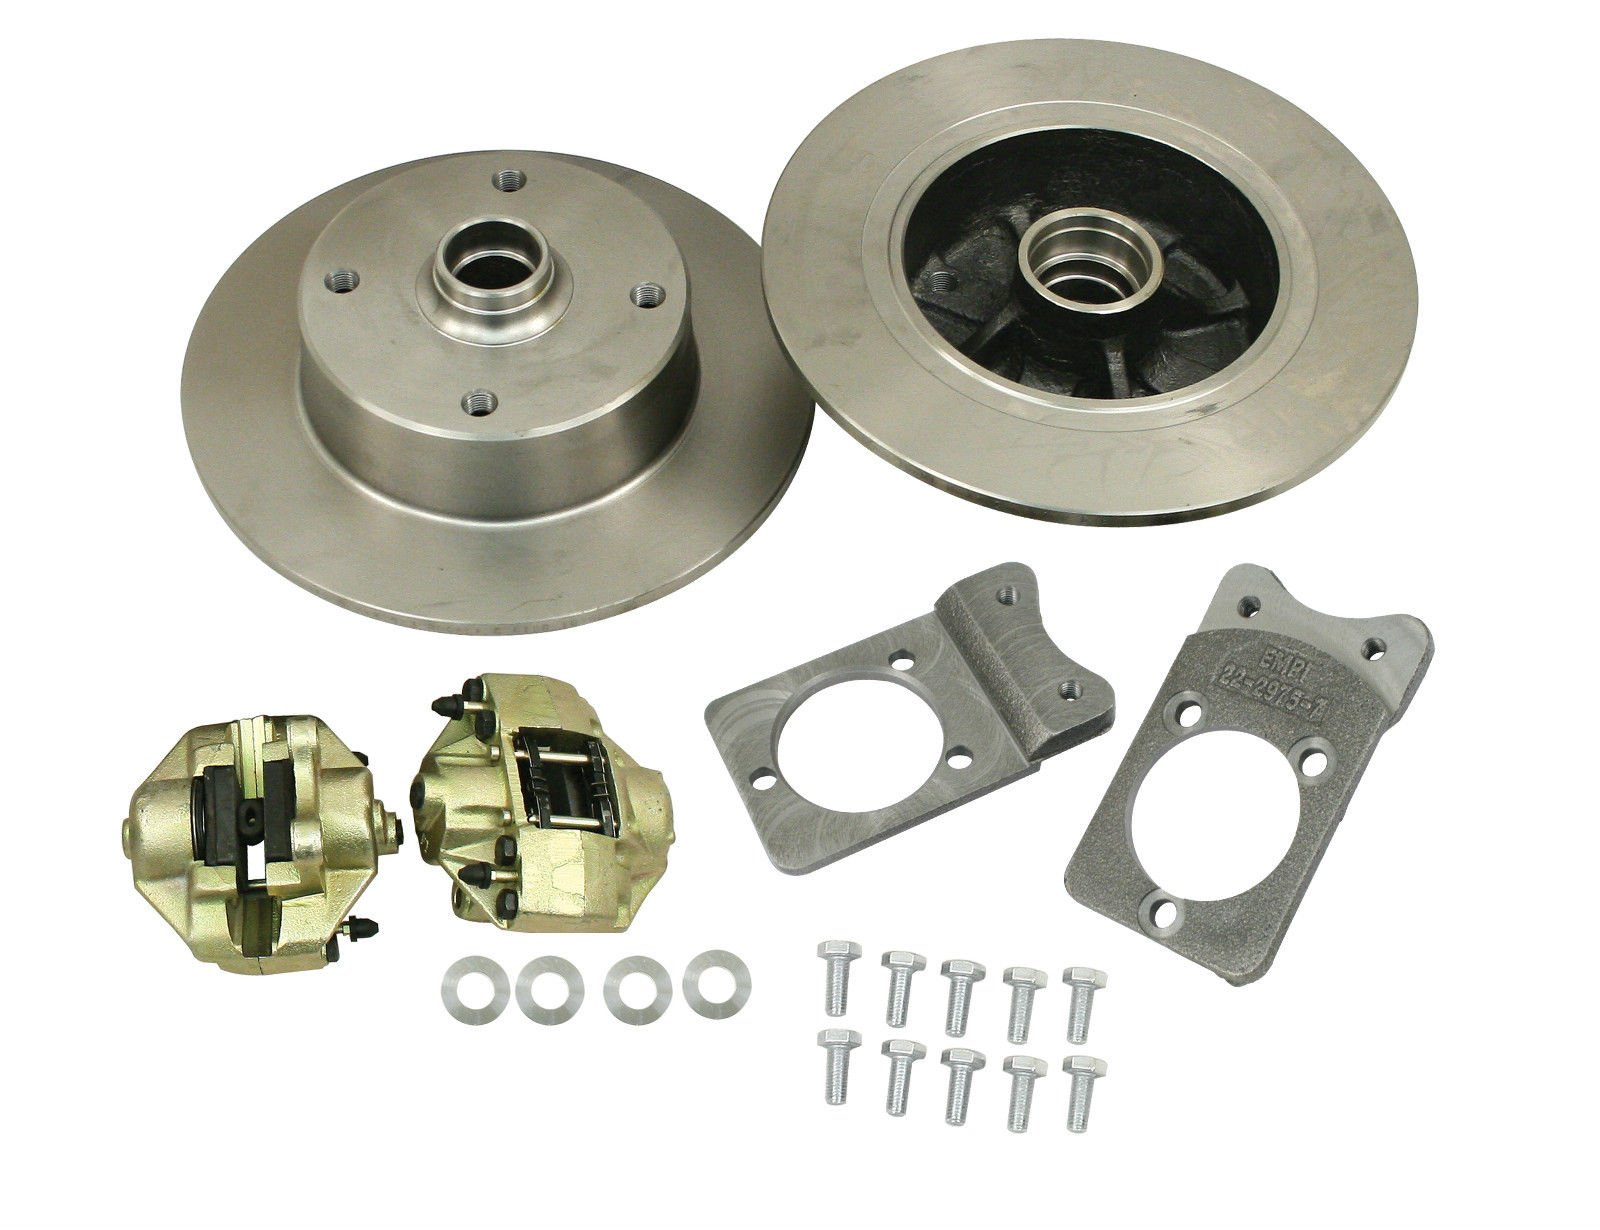 5//205 68-72 Baja Buggy Empi Wide Rear Disc Brake Kit W//O E-Brake S//Axle 1968 I.R.S Compatible with Off Road